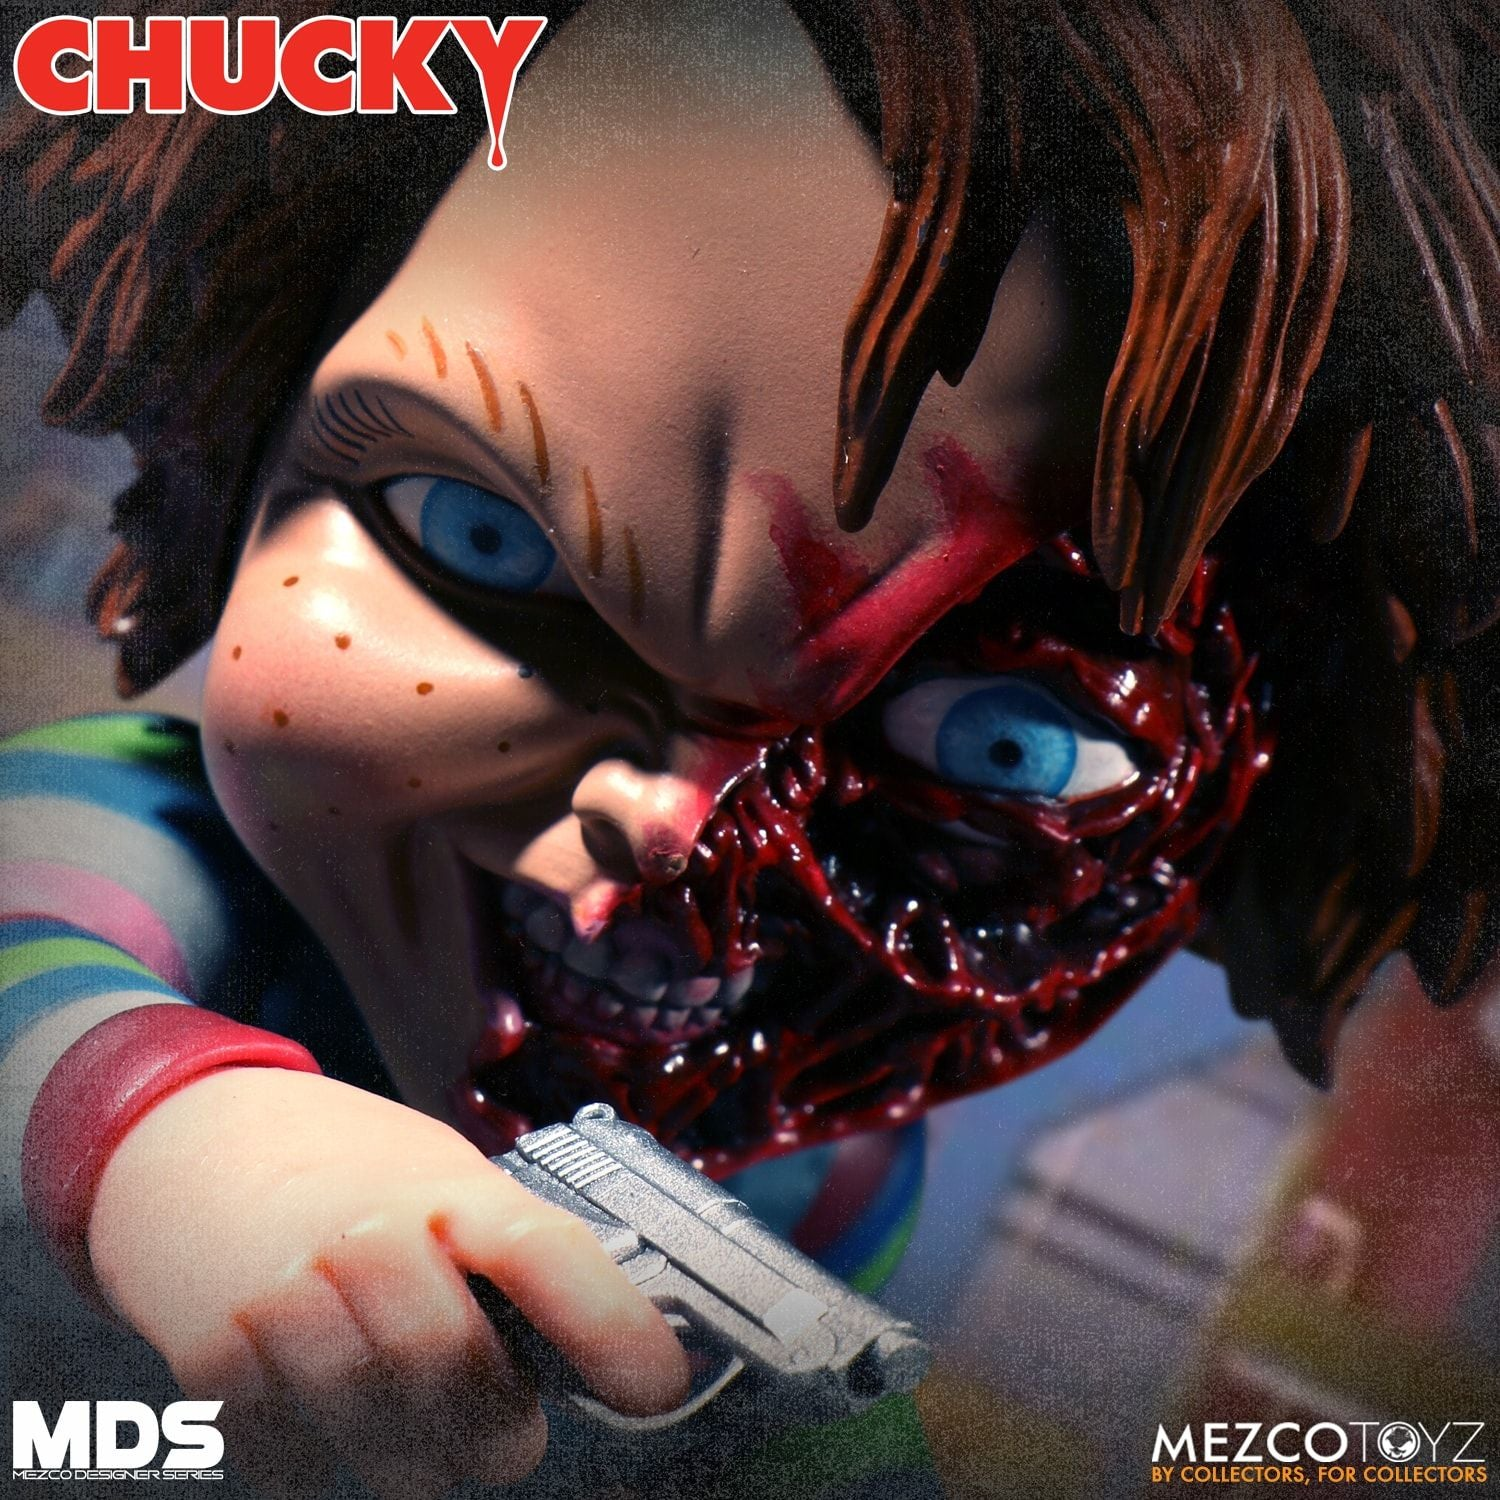 Mezco Chucky Designer Series Deluxe MDS Childs Play Action Figure - Collectors Row Inc.